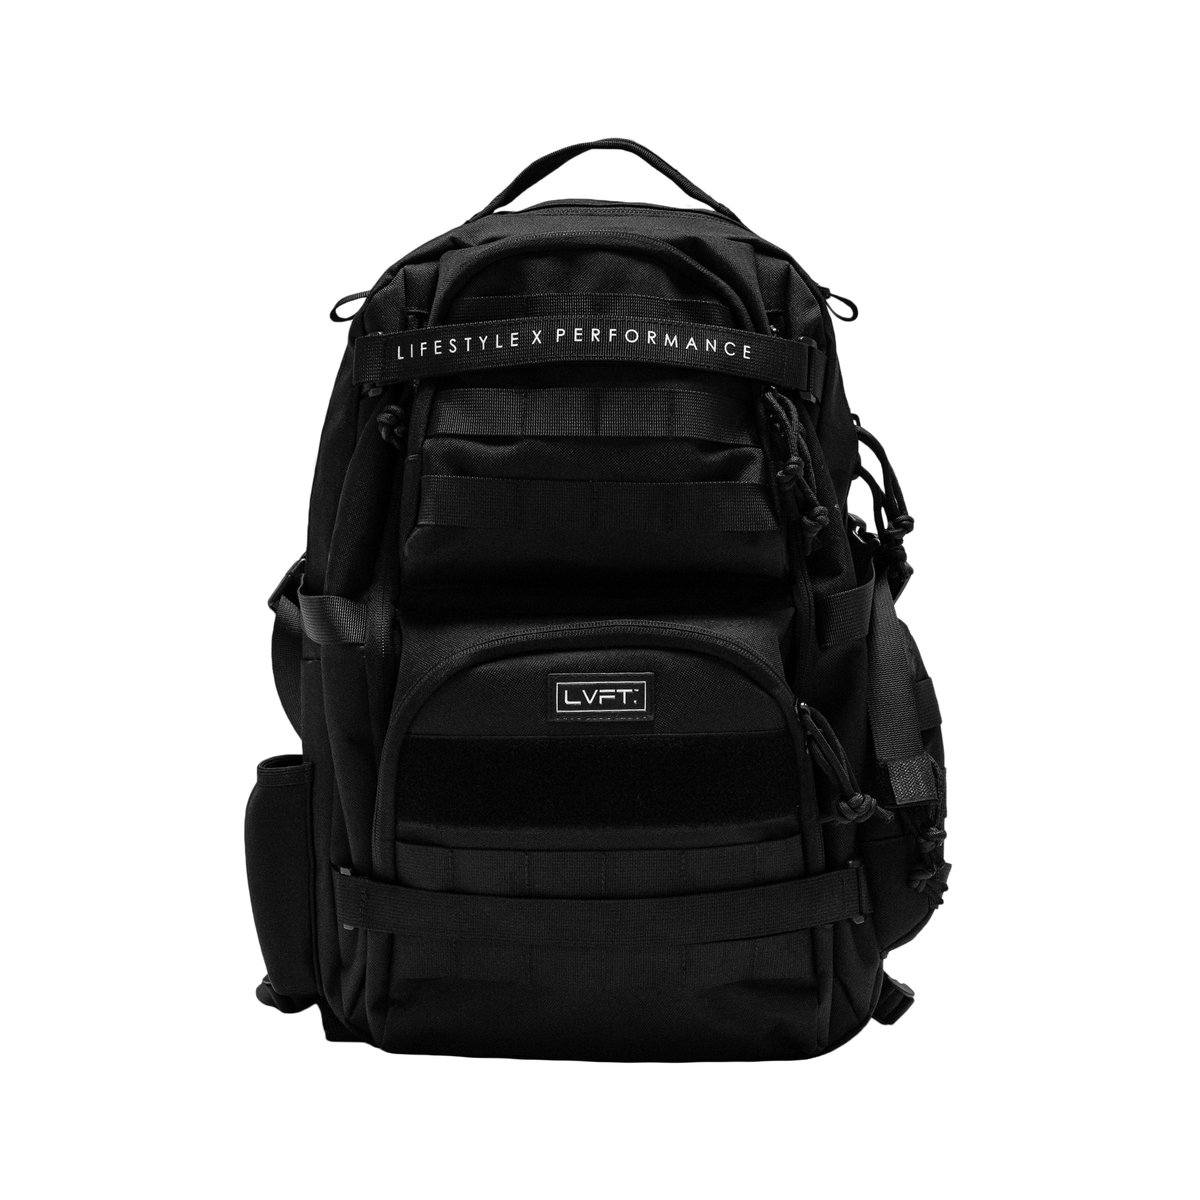 Live Fit V2 Tactical Backpack